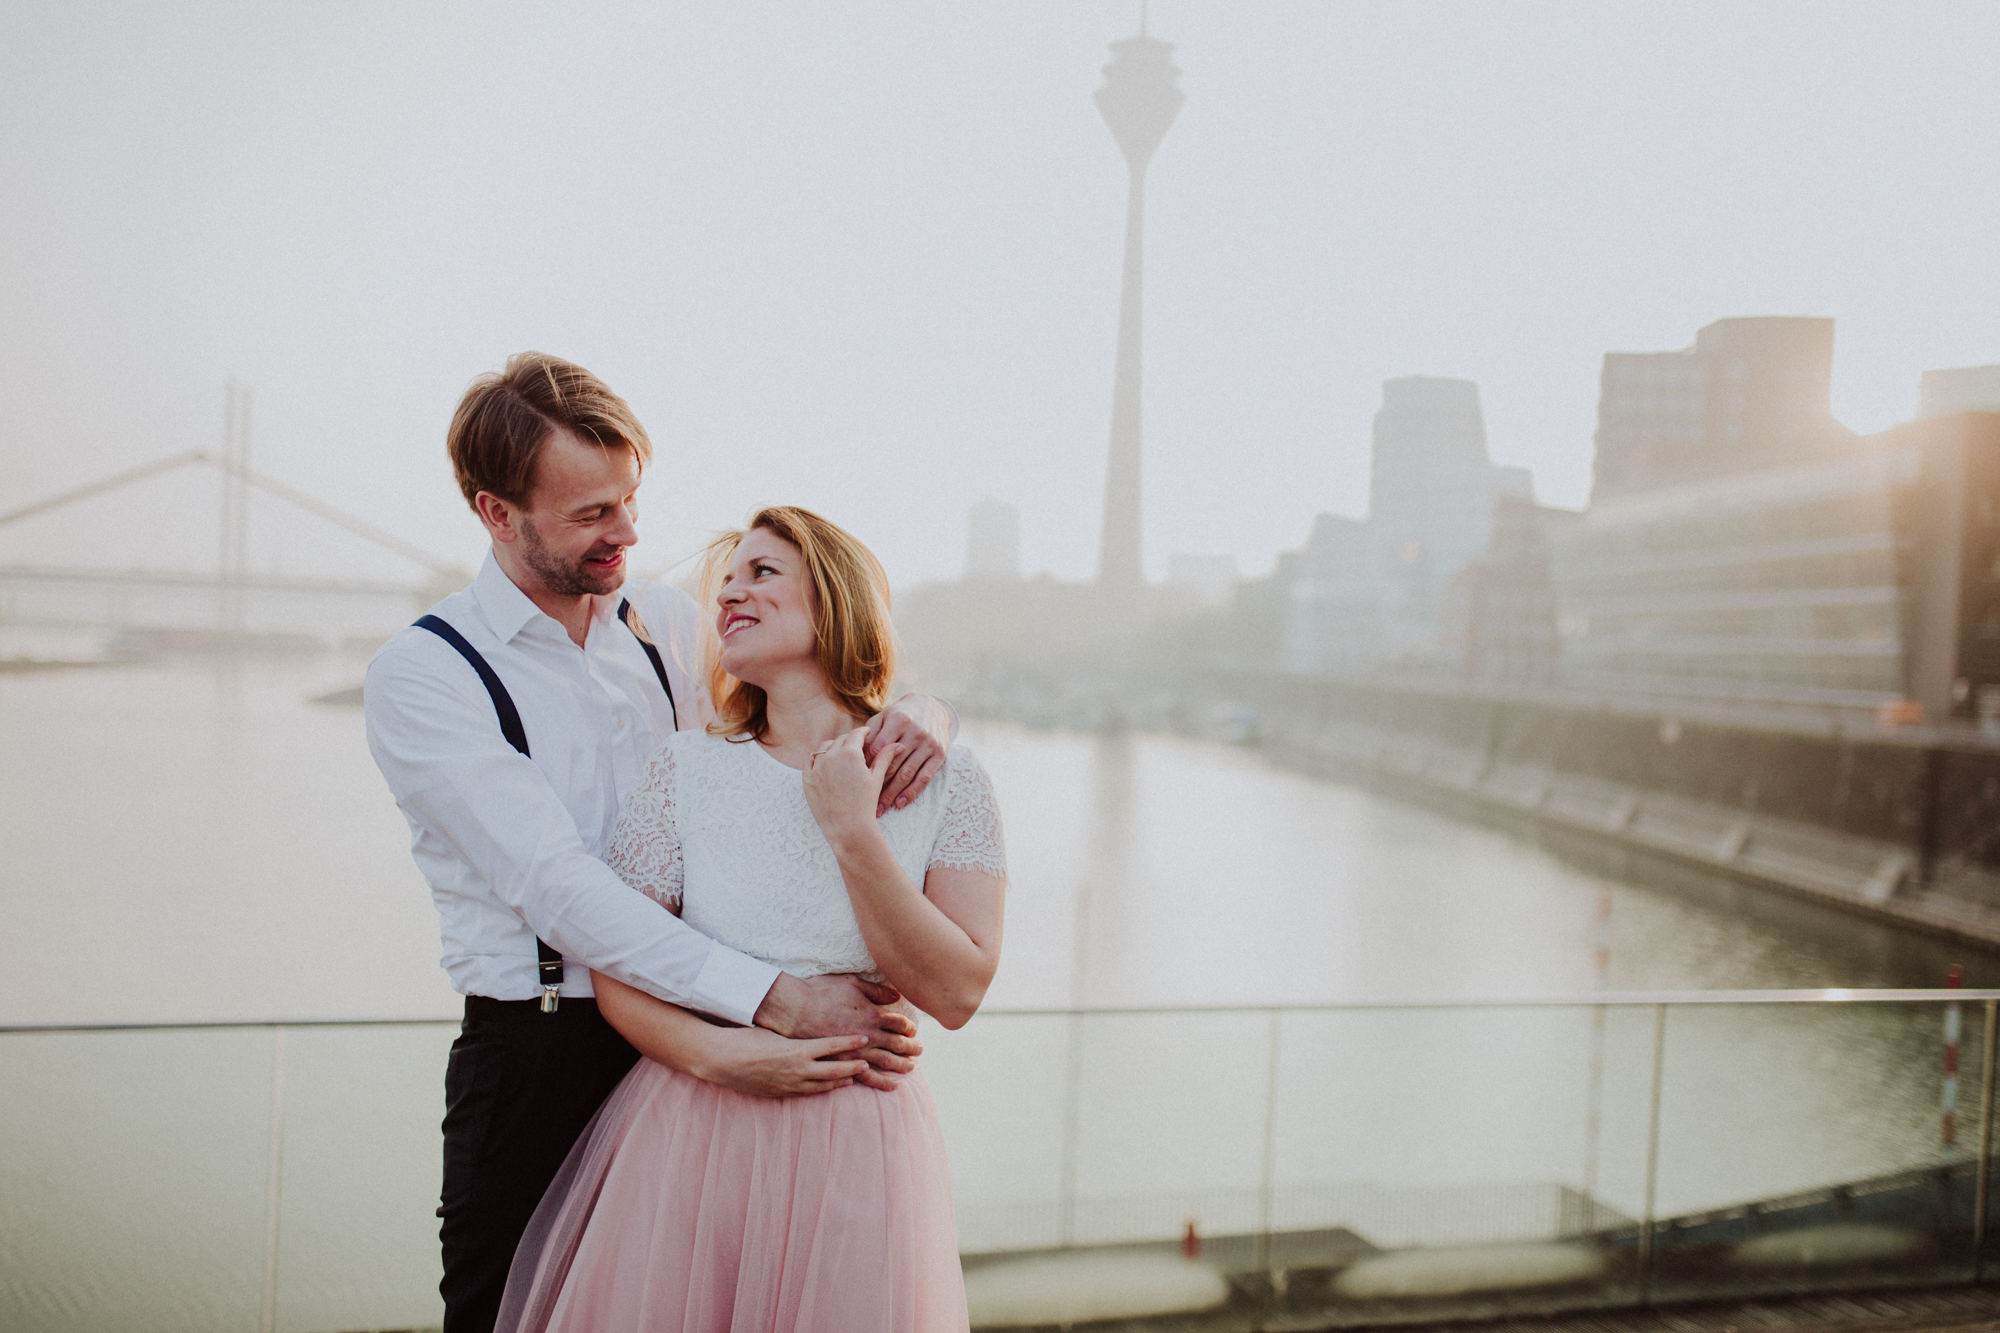 Lovestory Engagement Shooting Verlobungsshooting Düsseldorf Medienhafen Couple Weddingphotography Canan Maass Hochzeitsfotograf Bochum Düsseldorf Destination Wedding Photographer Sunrise Shooting Verlobungsshooting